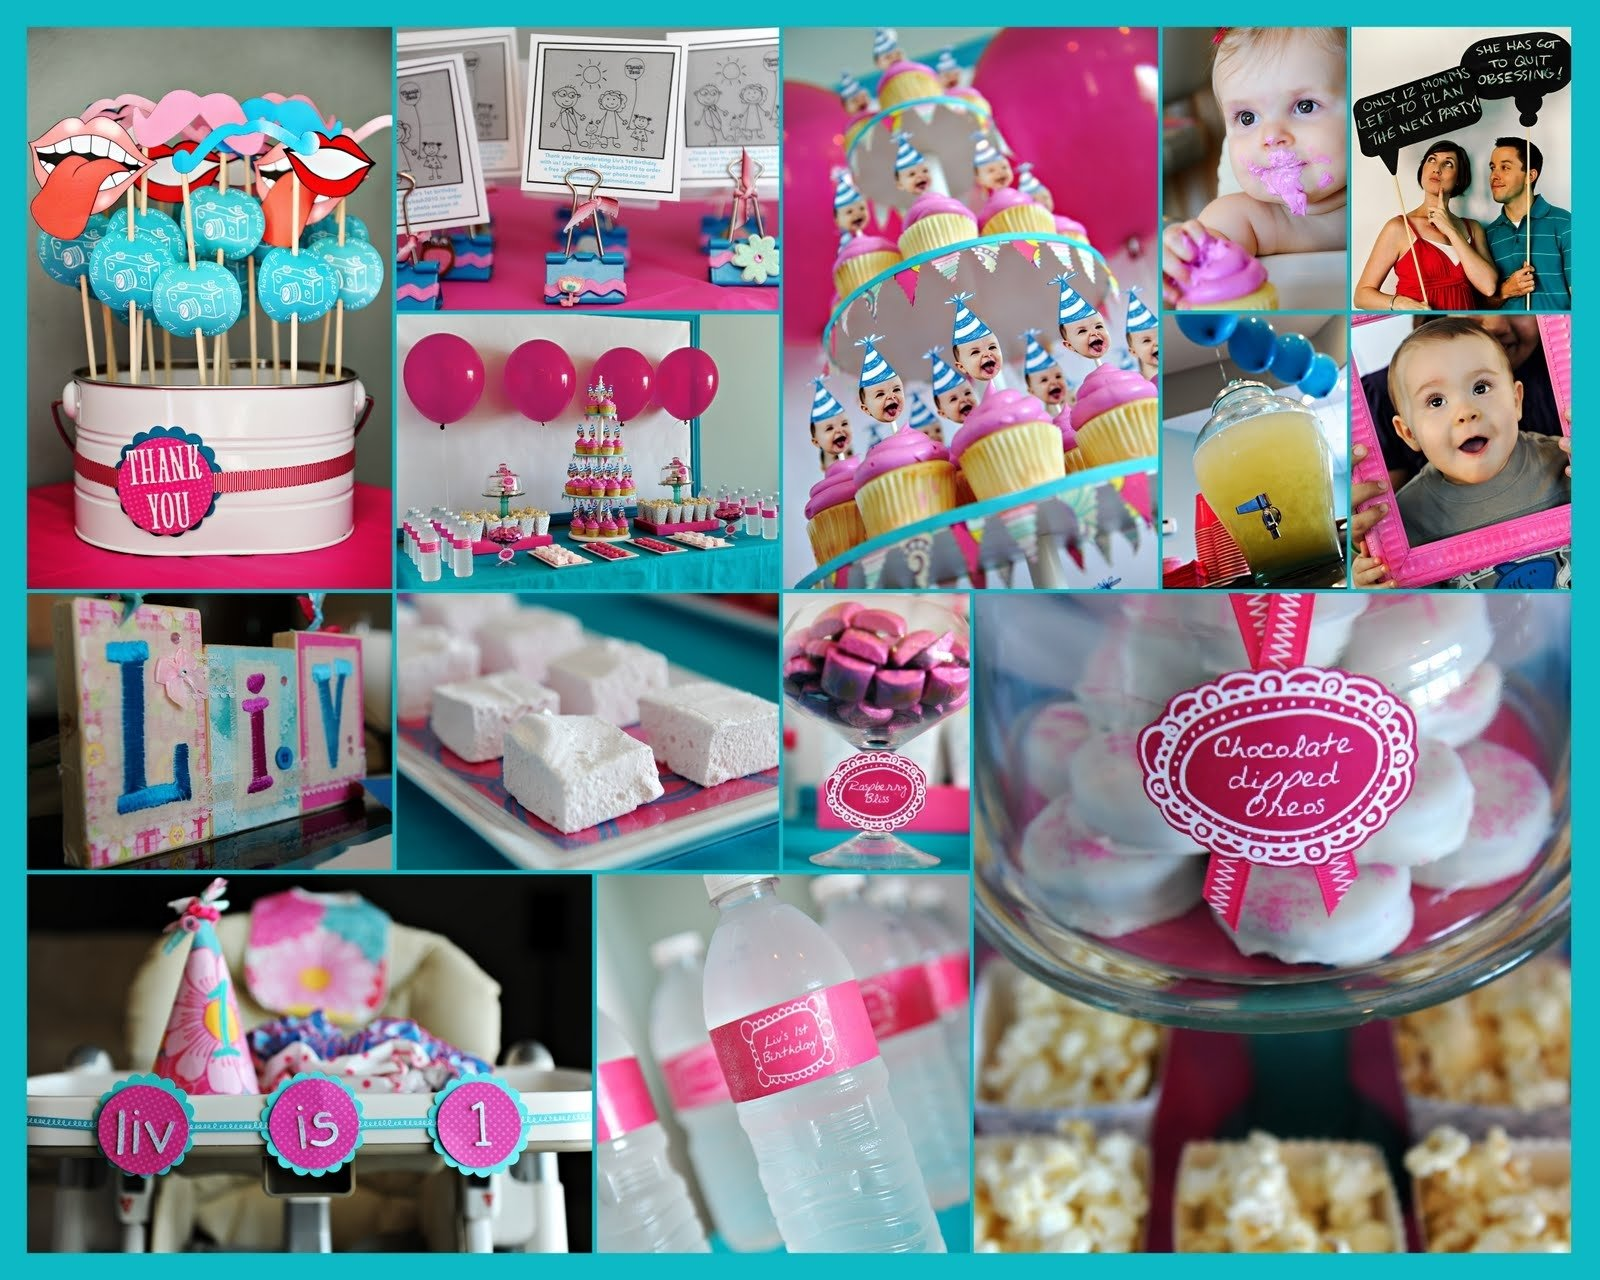 10 Best 6 Yr Old Girl Birthday Party Ideas elle belle creative one year old in a flash a first birthday party 18 2021